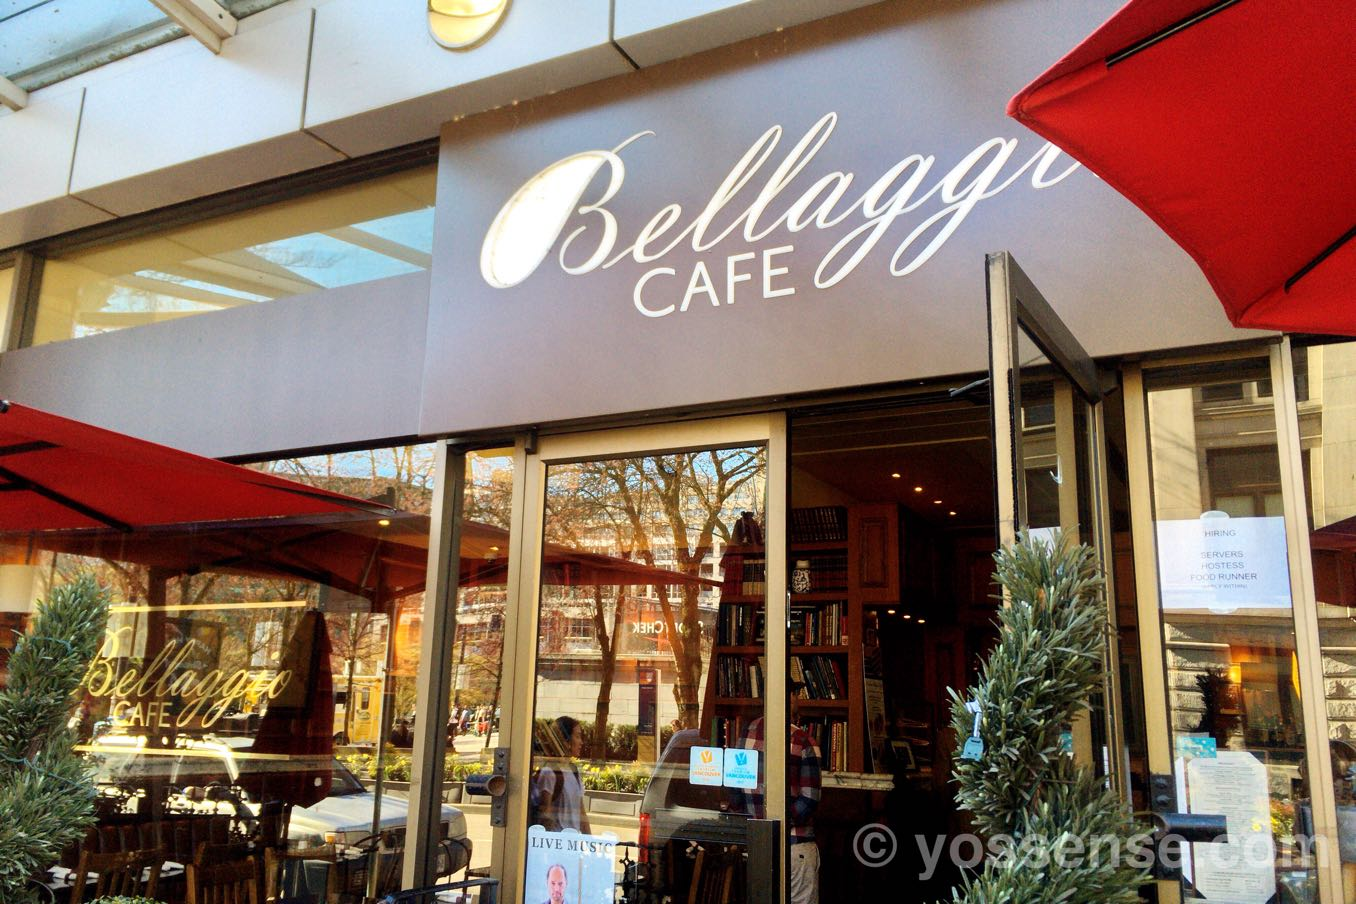 Bellaggio Cafeの入り口